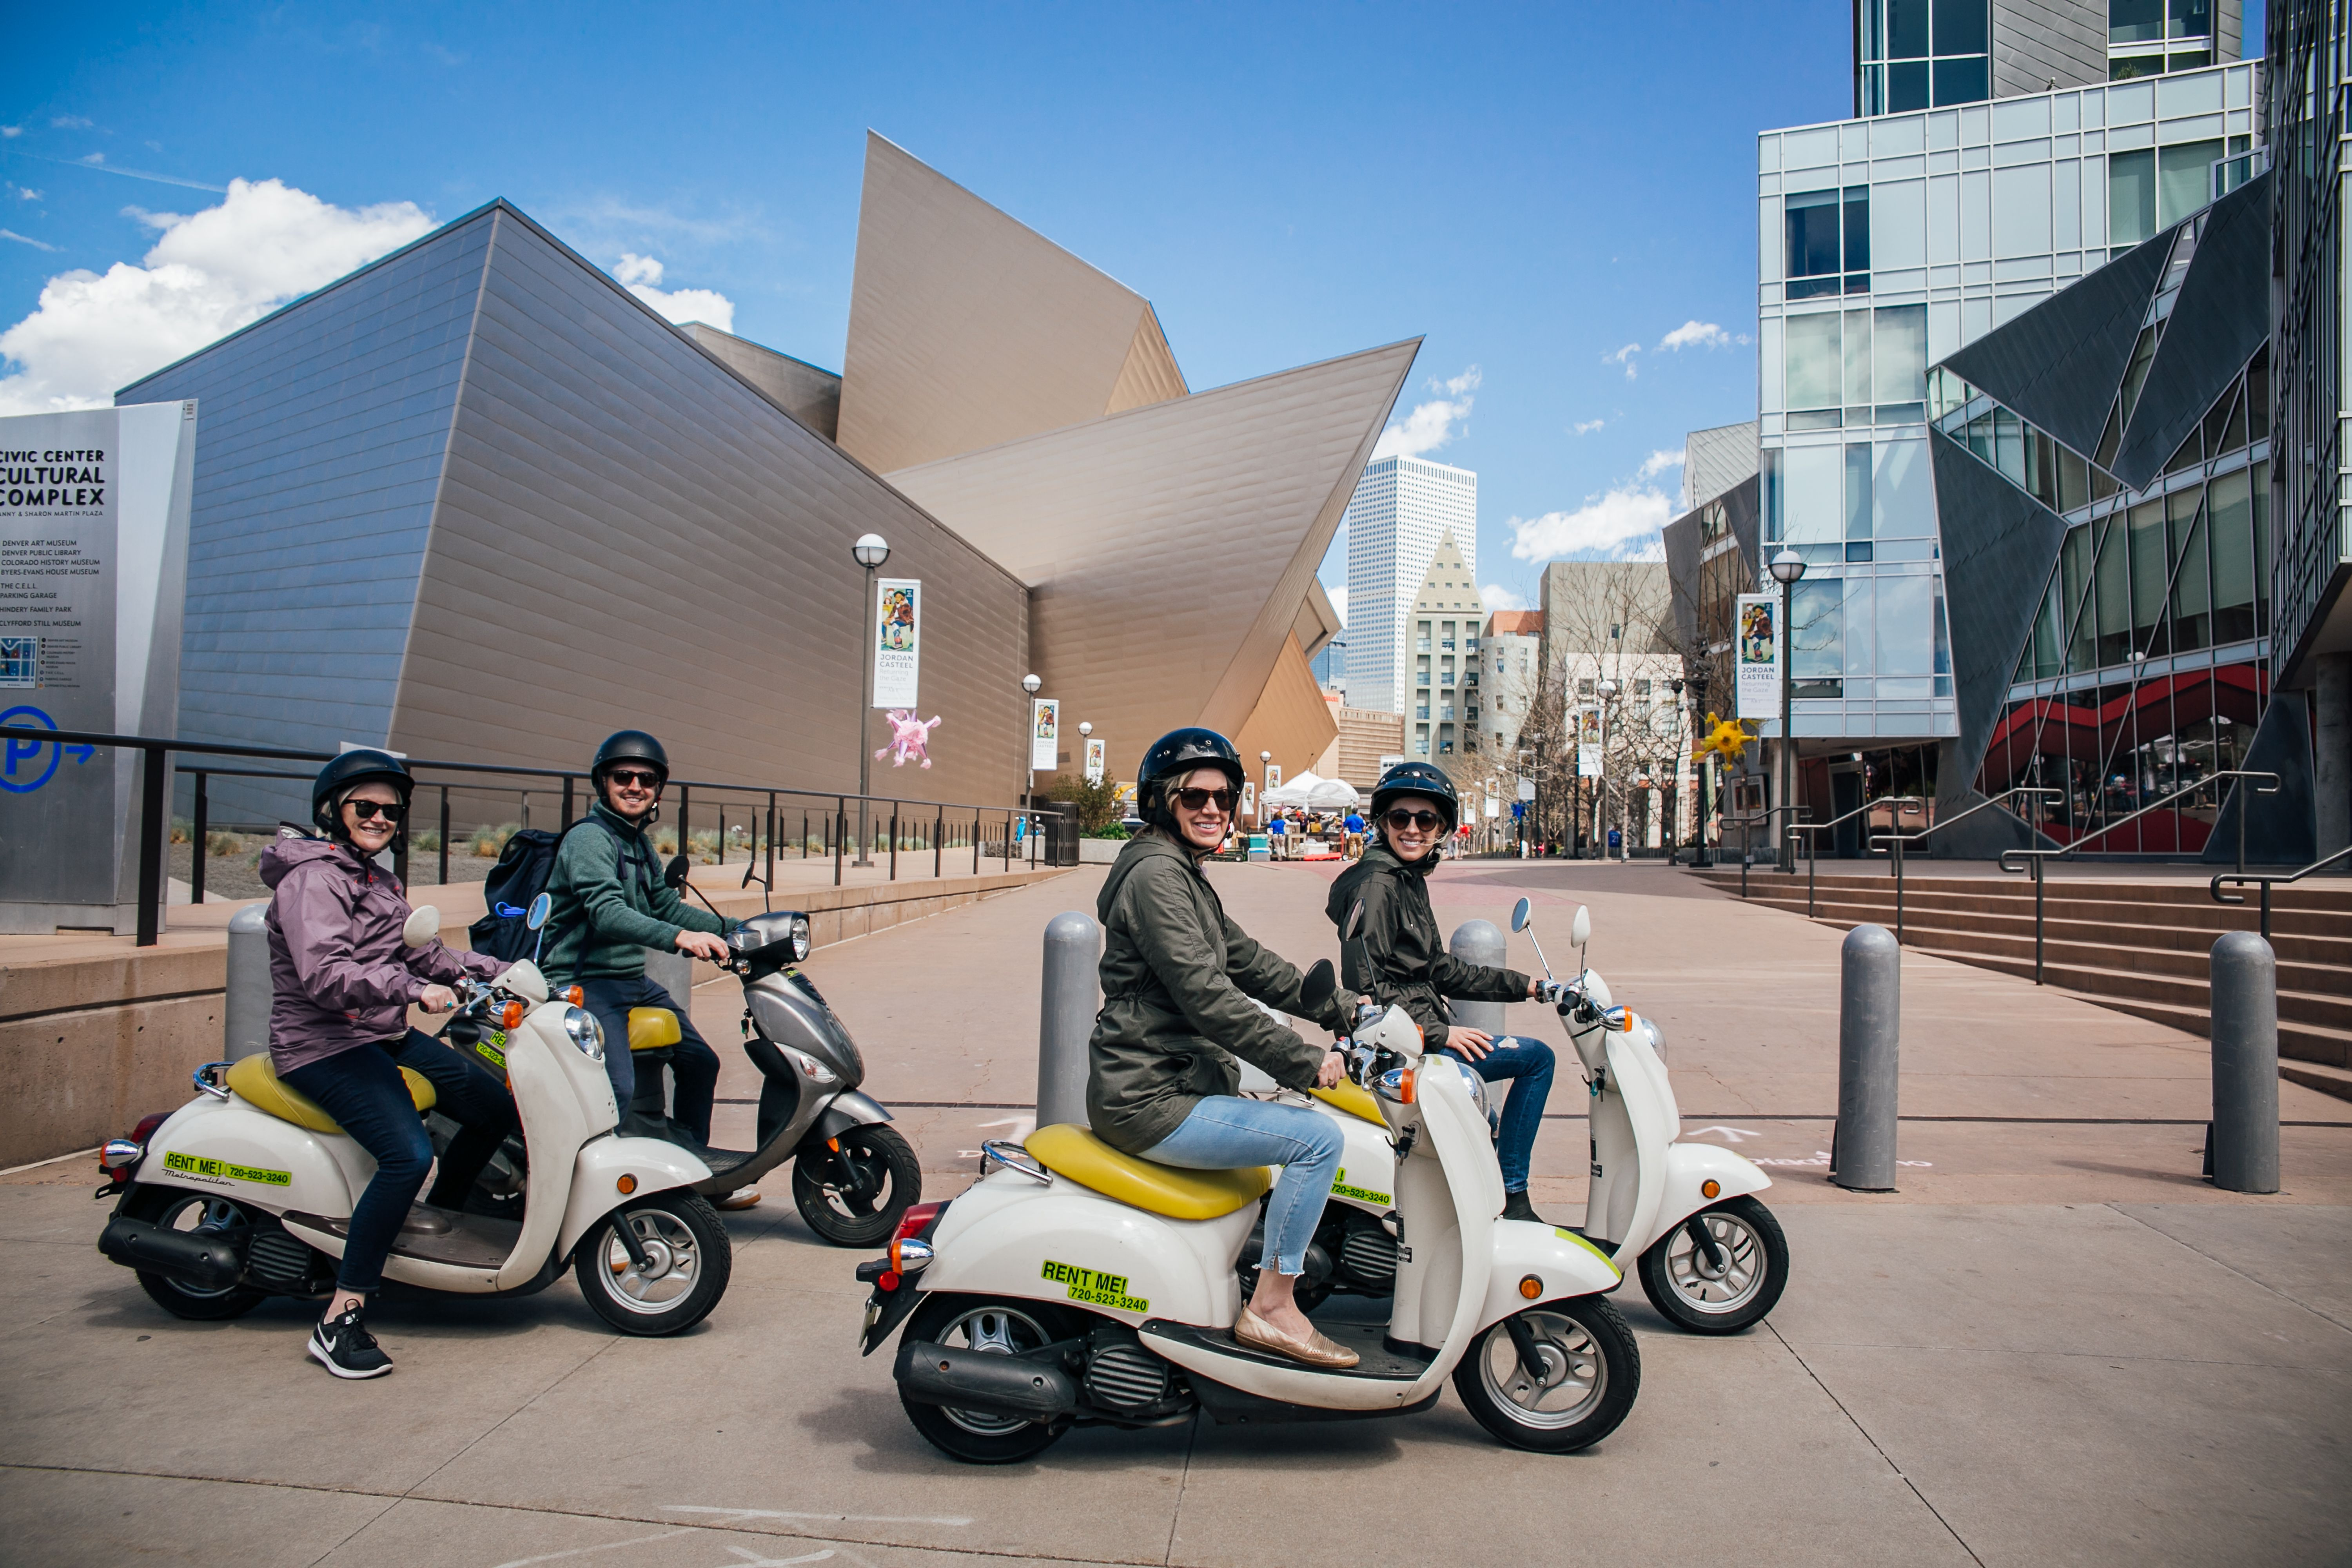 Find the Denver Art Museum when you rent scooters from